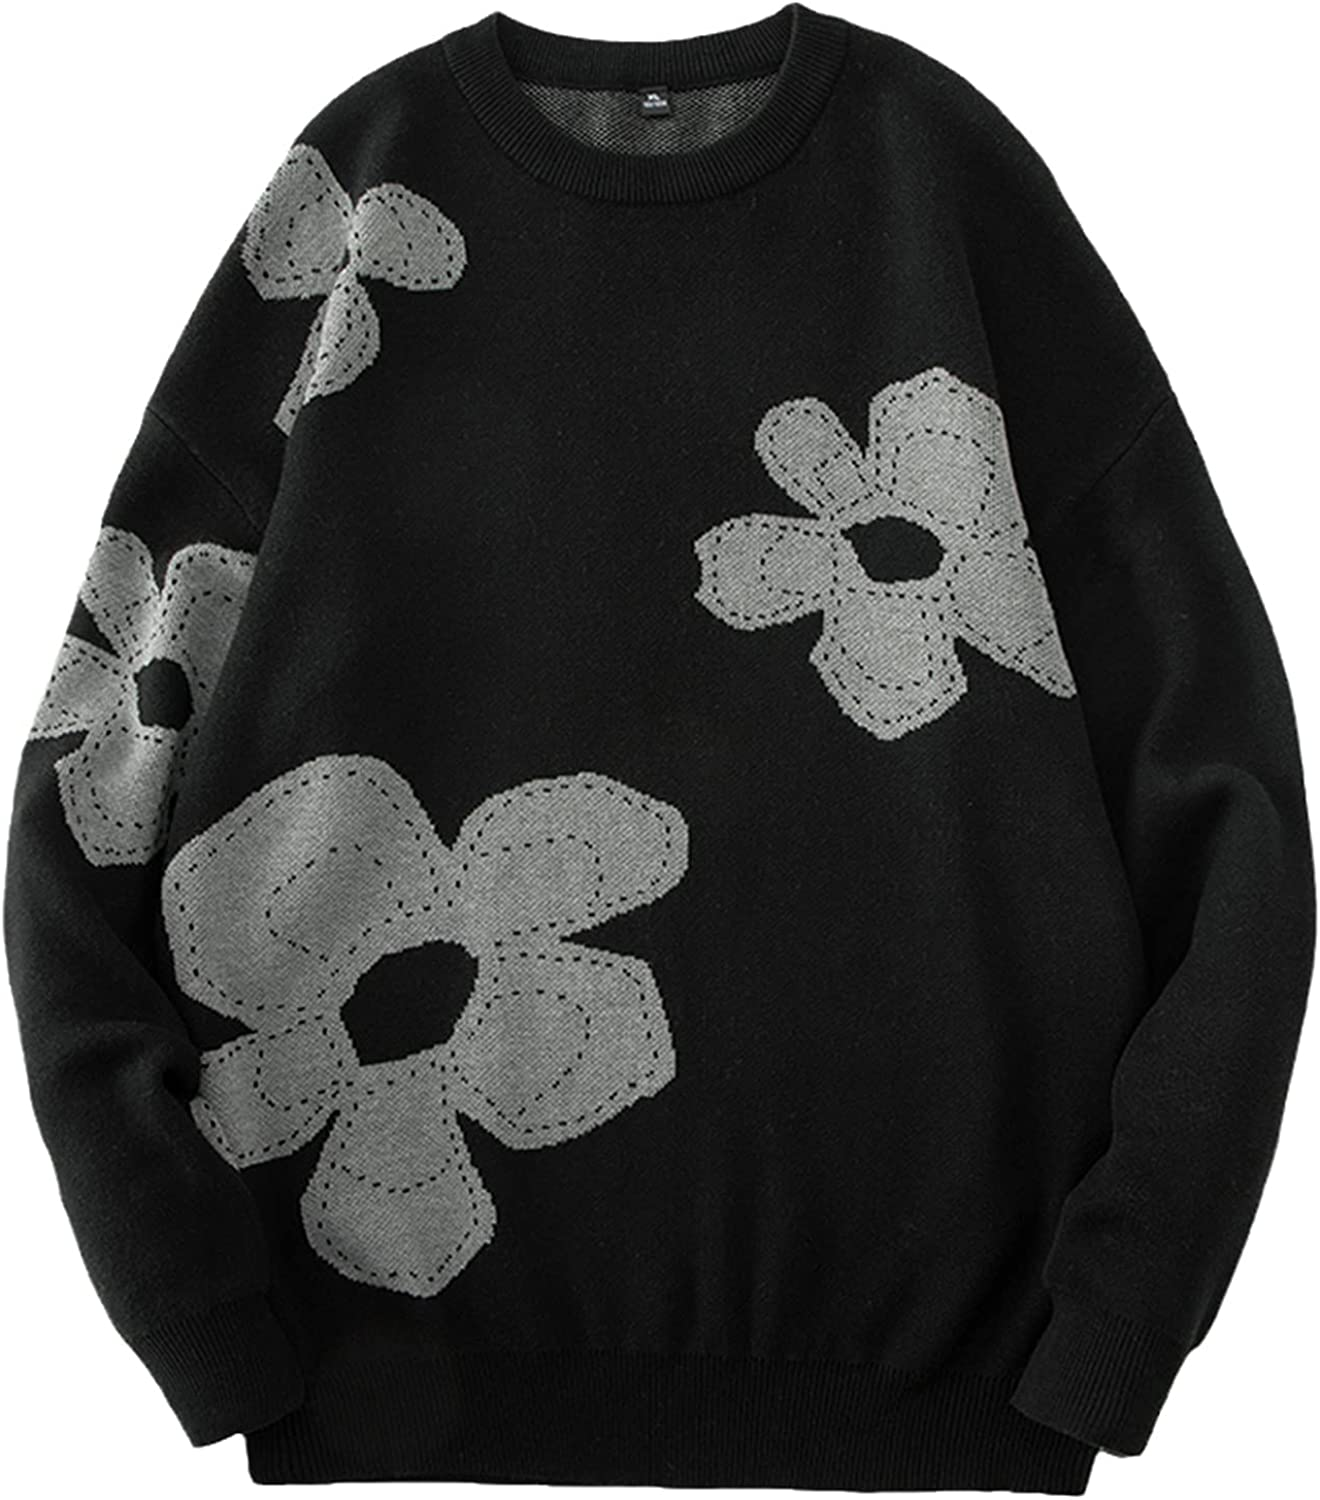 LKIUGVV Men Fashion Sweater Casual Loose Knitted Mens Pullover Long Sleeve Round Collar Flower Pattern Male Sweaters